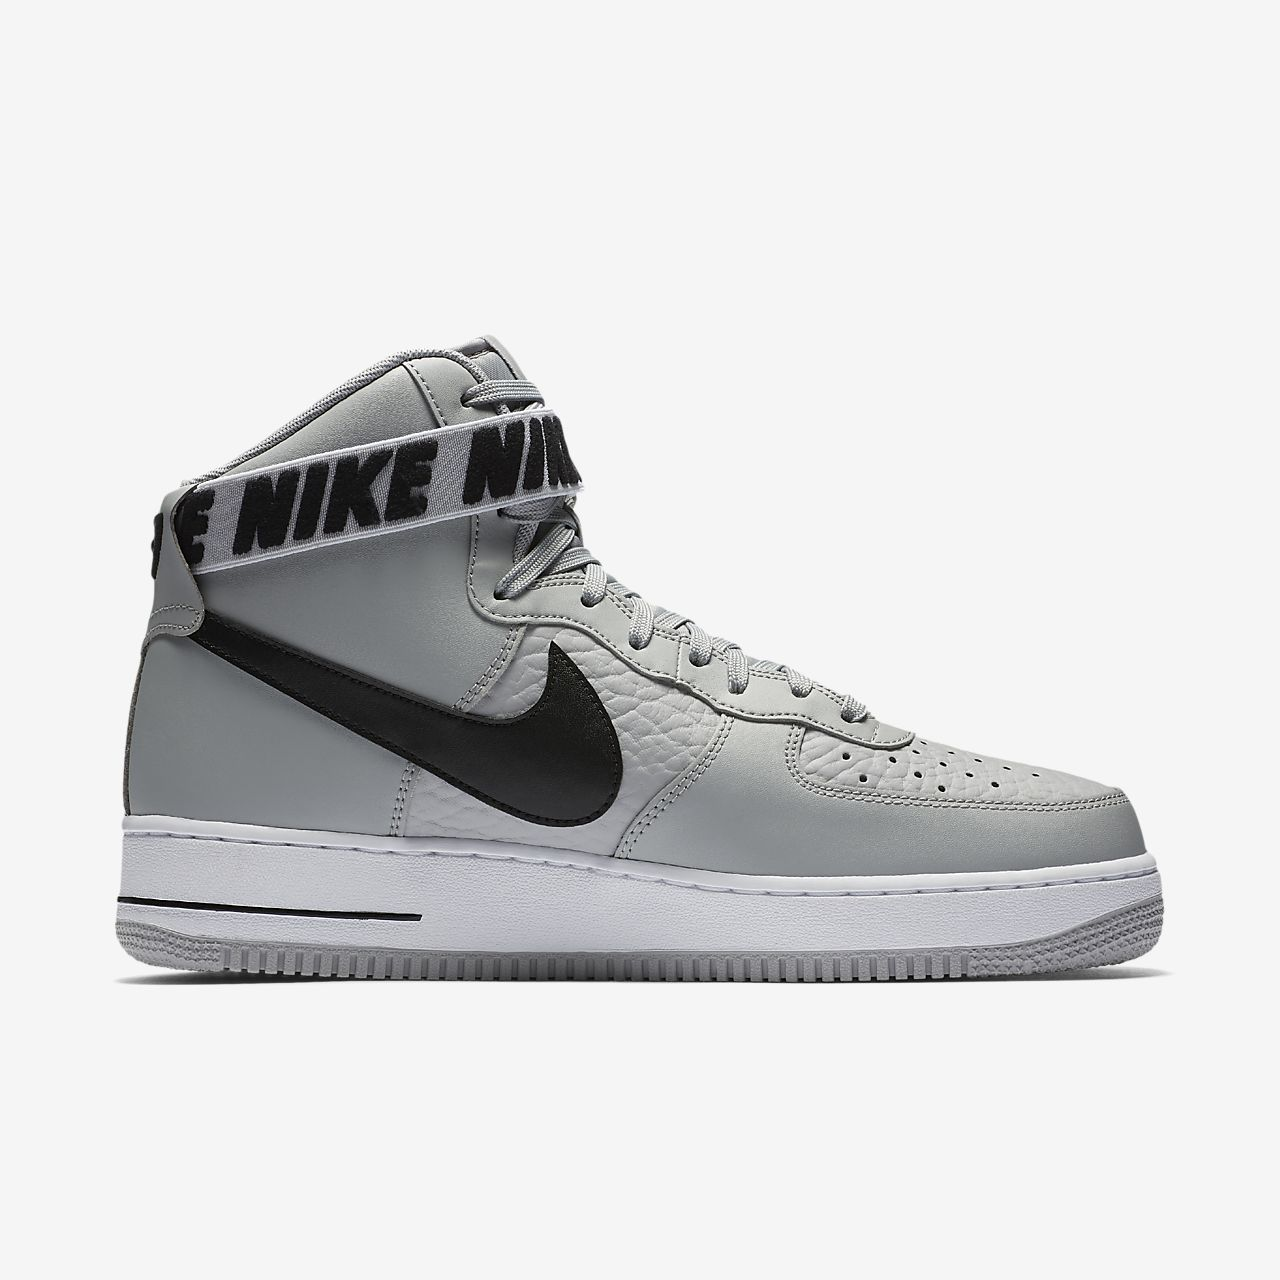 91fce43e42c4 Welcome to Lakeview Comprehensive Dentistry. nike air force 1 black high